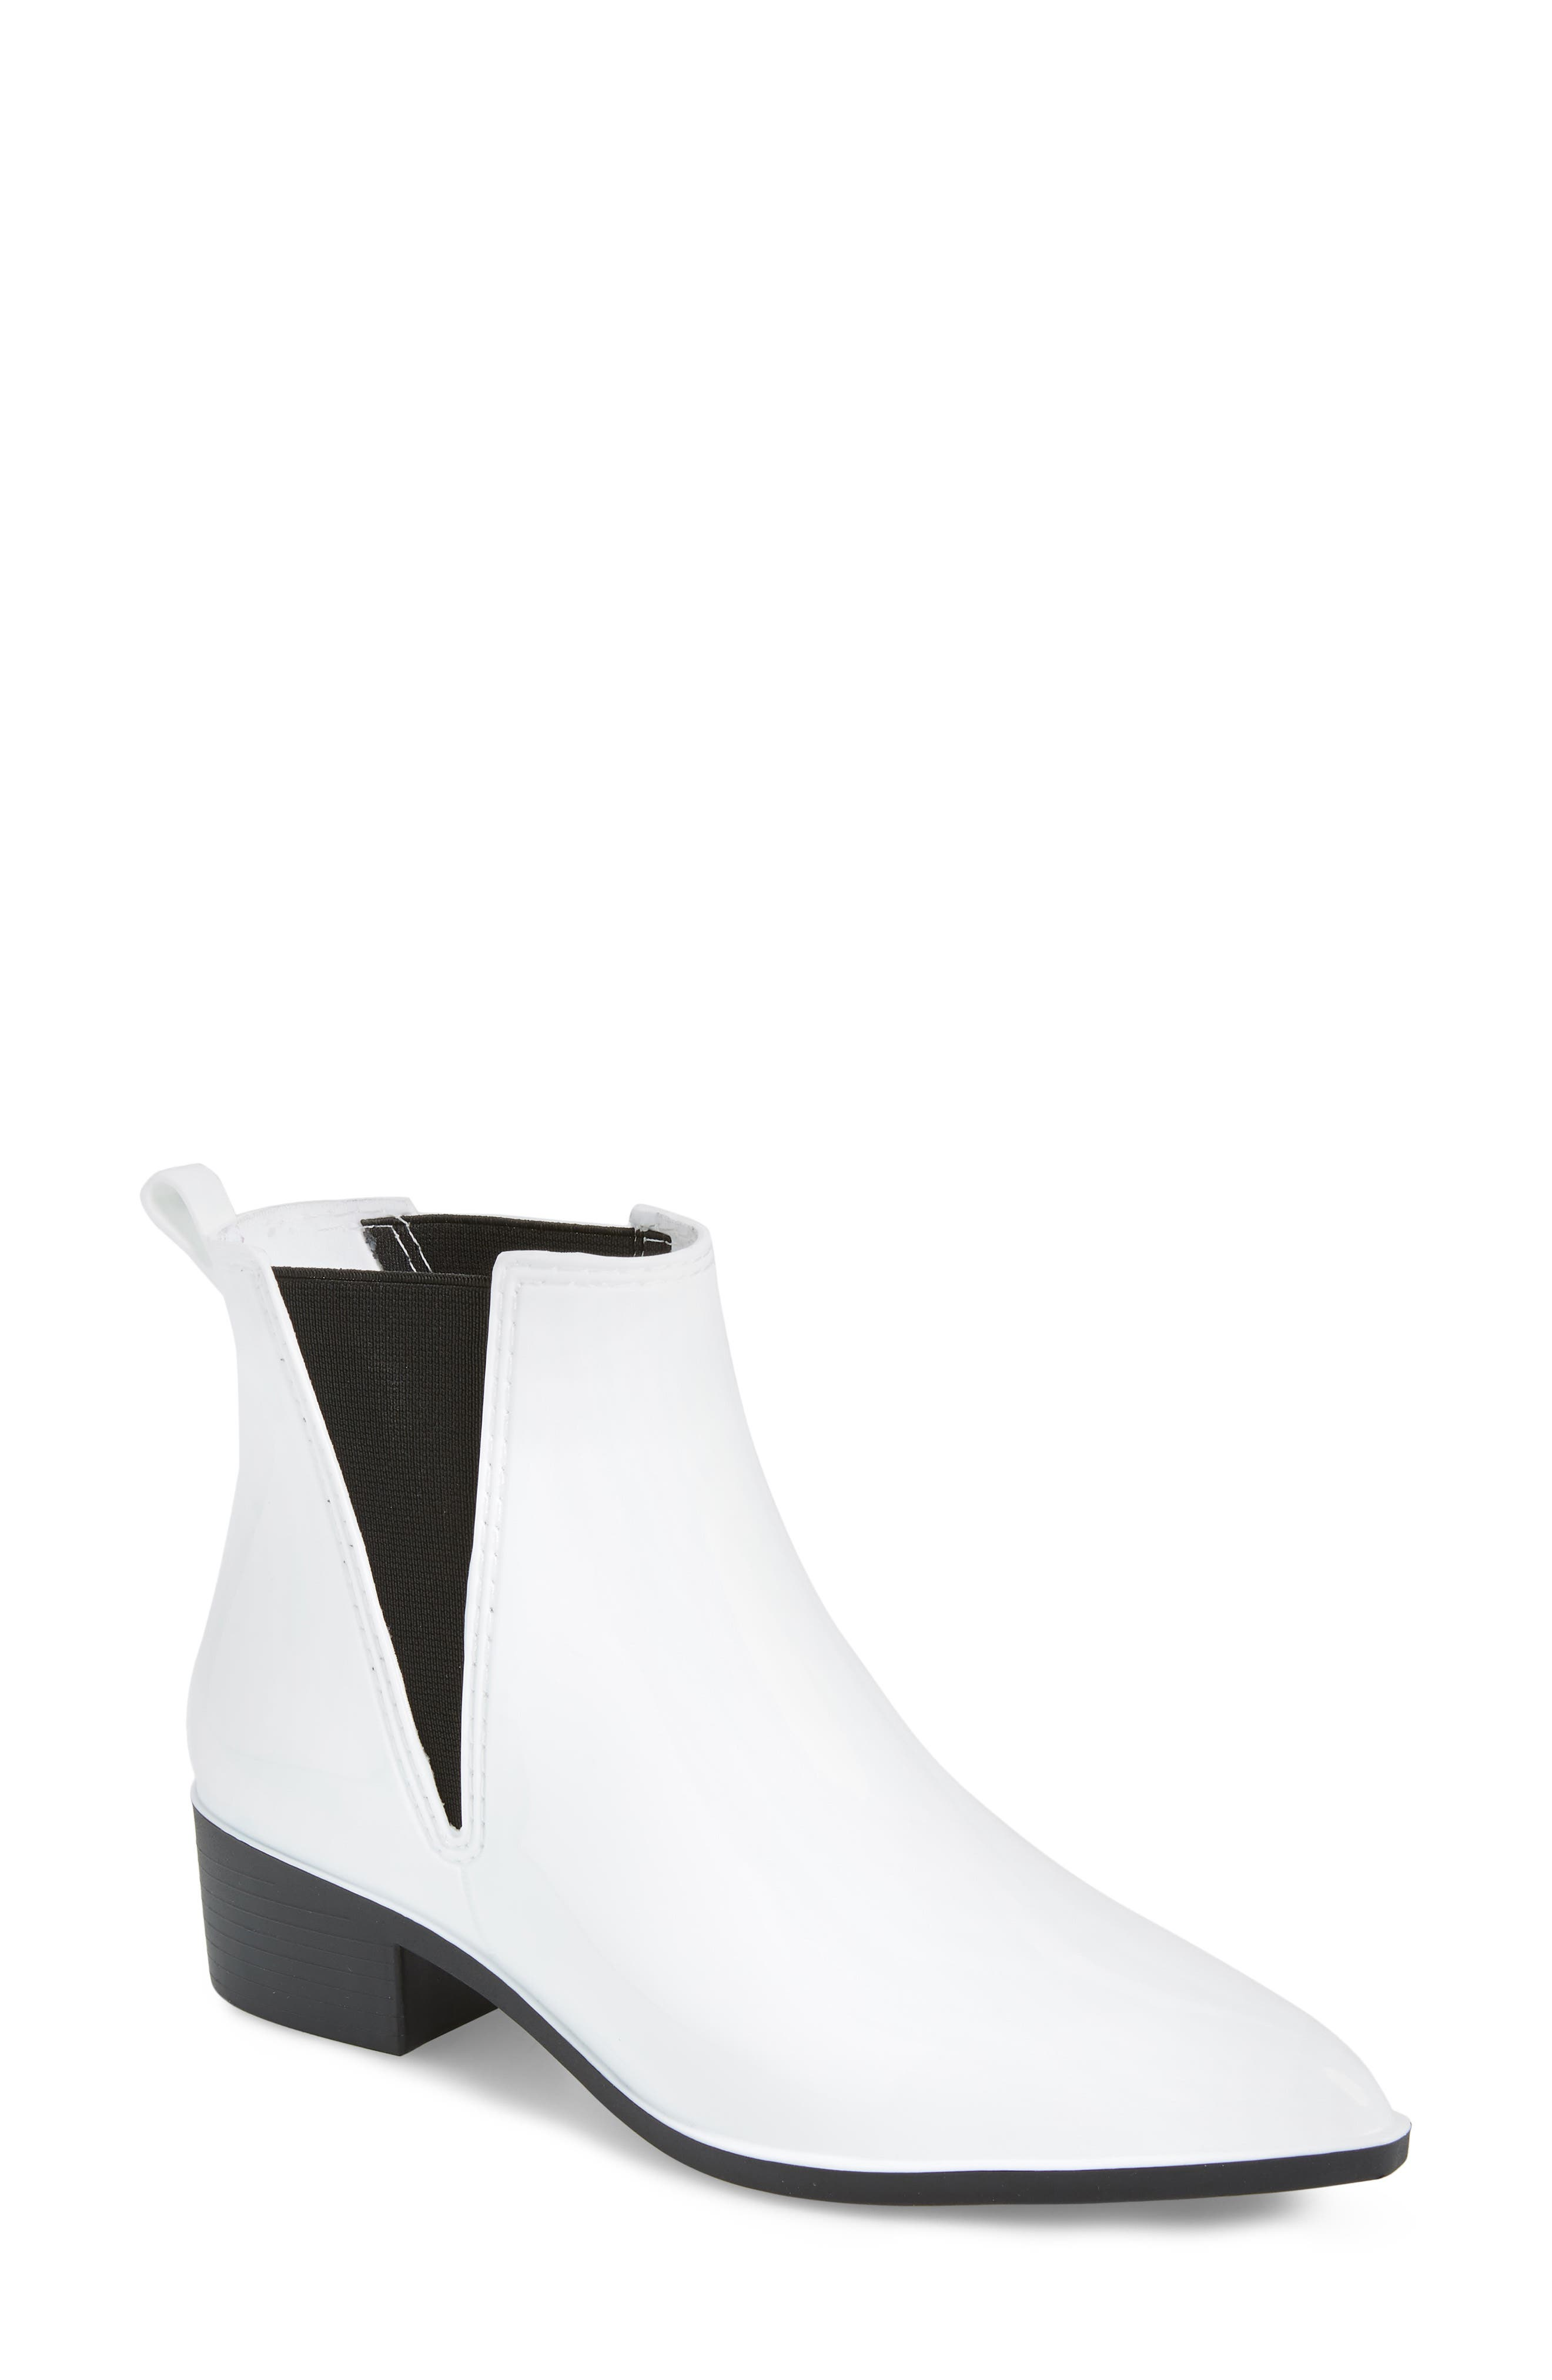 Jeffrey Campbell Mist Chelsea Waterproof Rain Boot, White